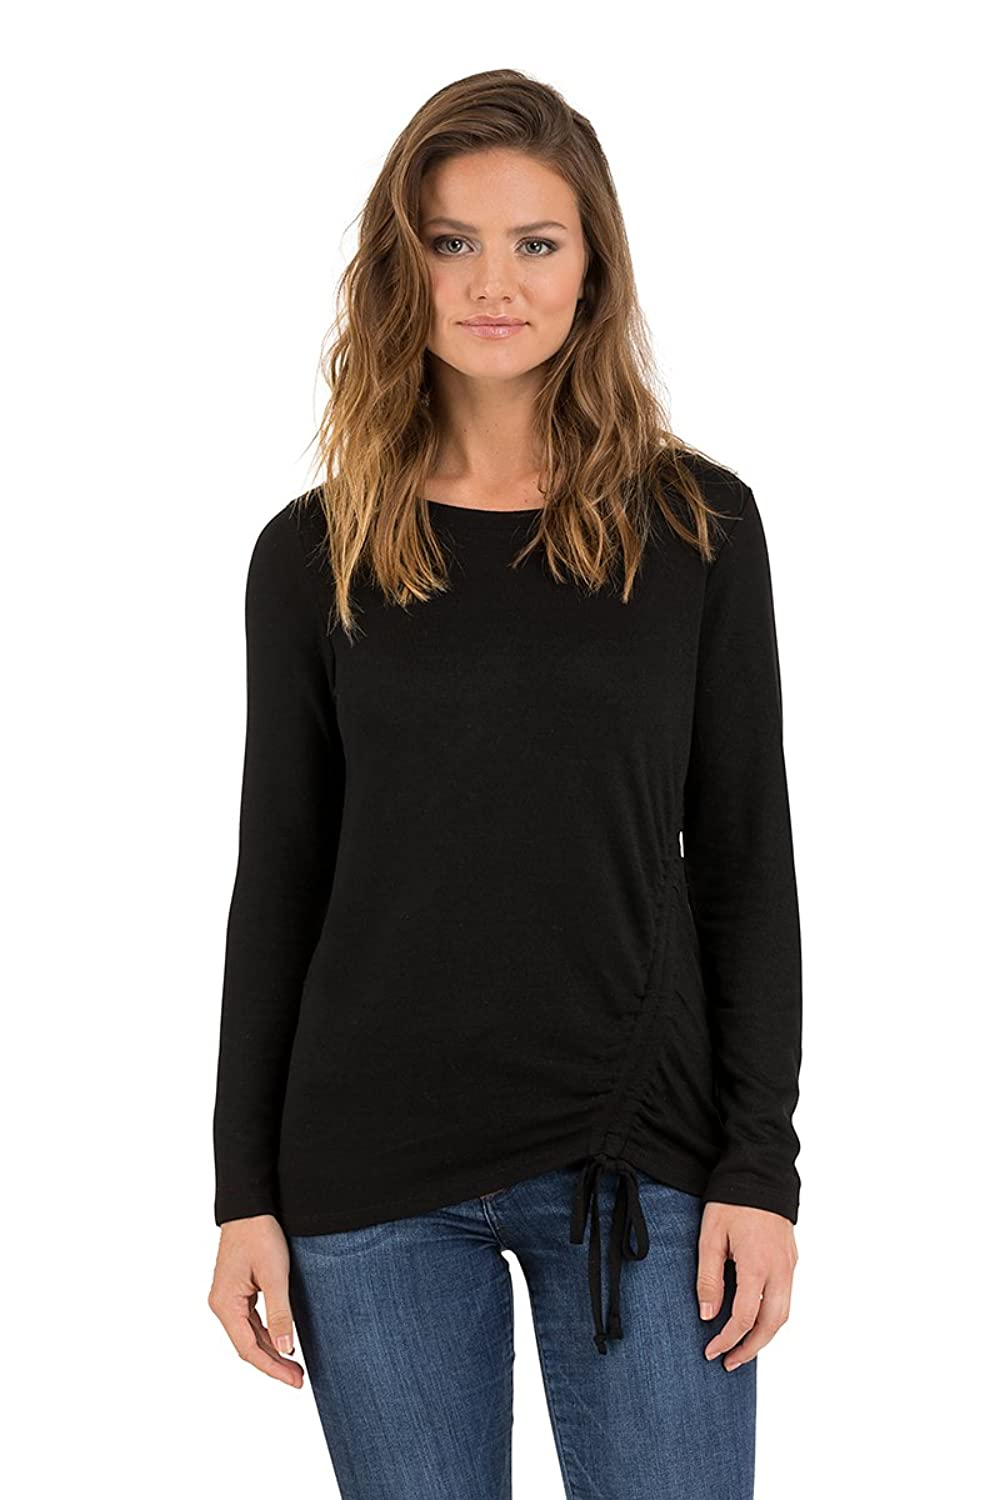 Como Blu Casual Cozy French Terry Long Sleeve Top For Women With Drawstring